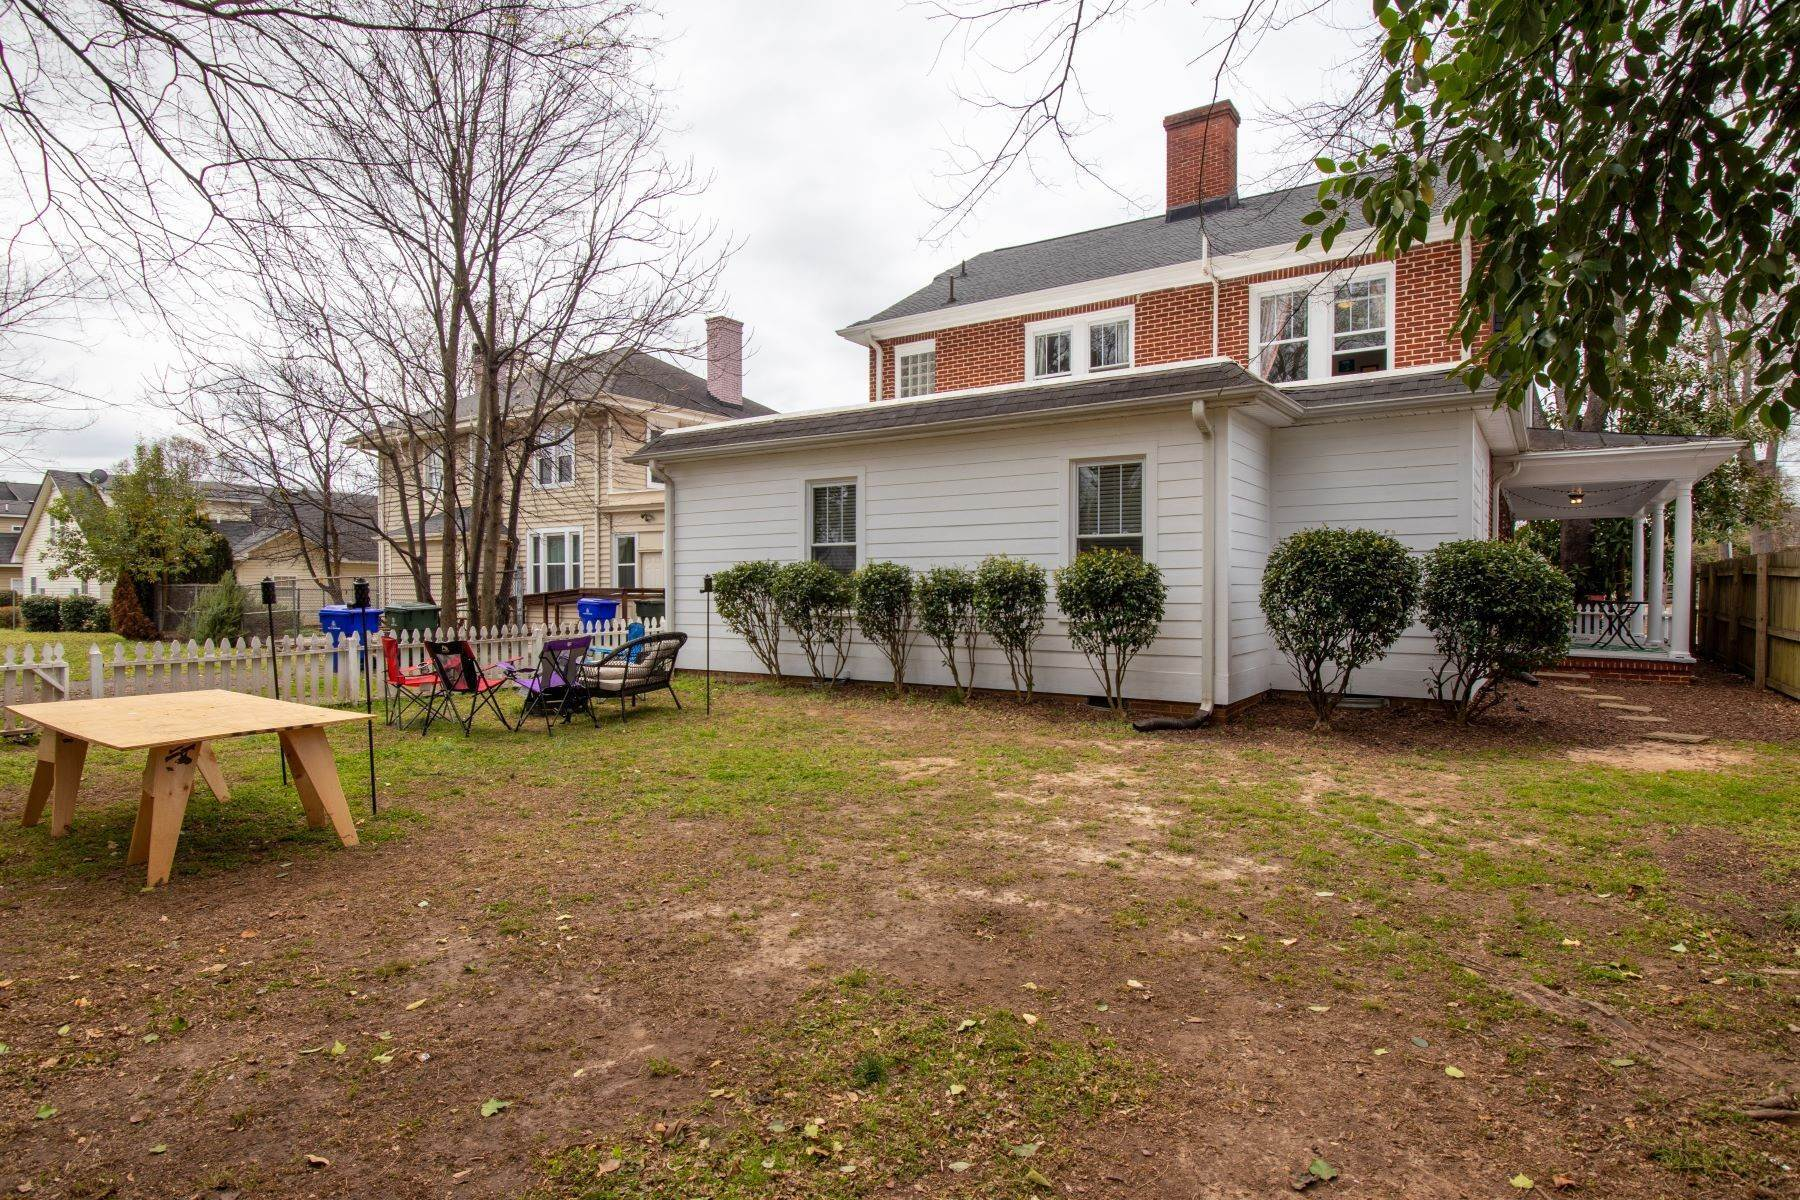 34. Single Family Homes for Sale at UNDER CONTRACT! 7 South Memminger Street, Greenville, SC 29601 Greenville, SC 29601